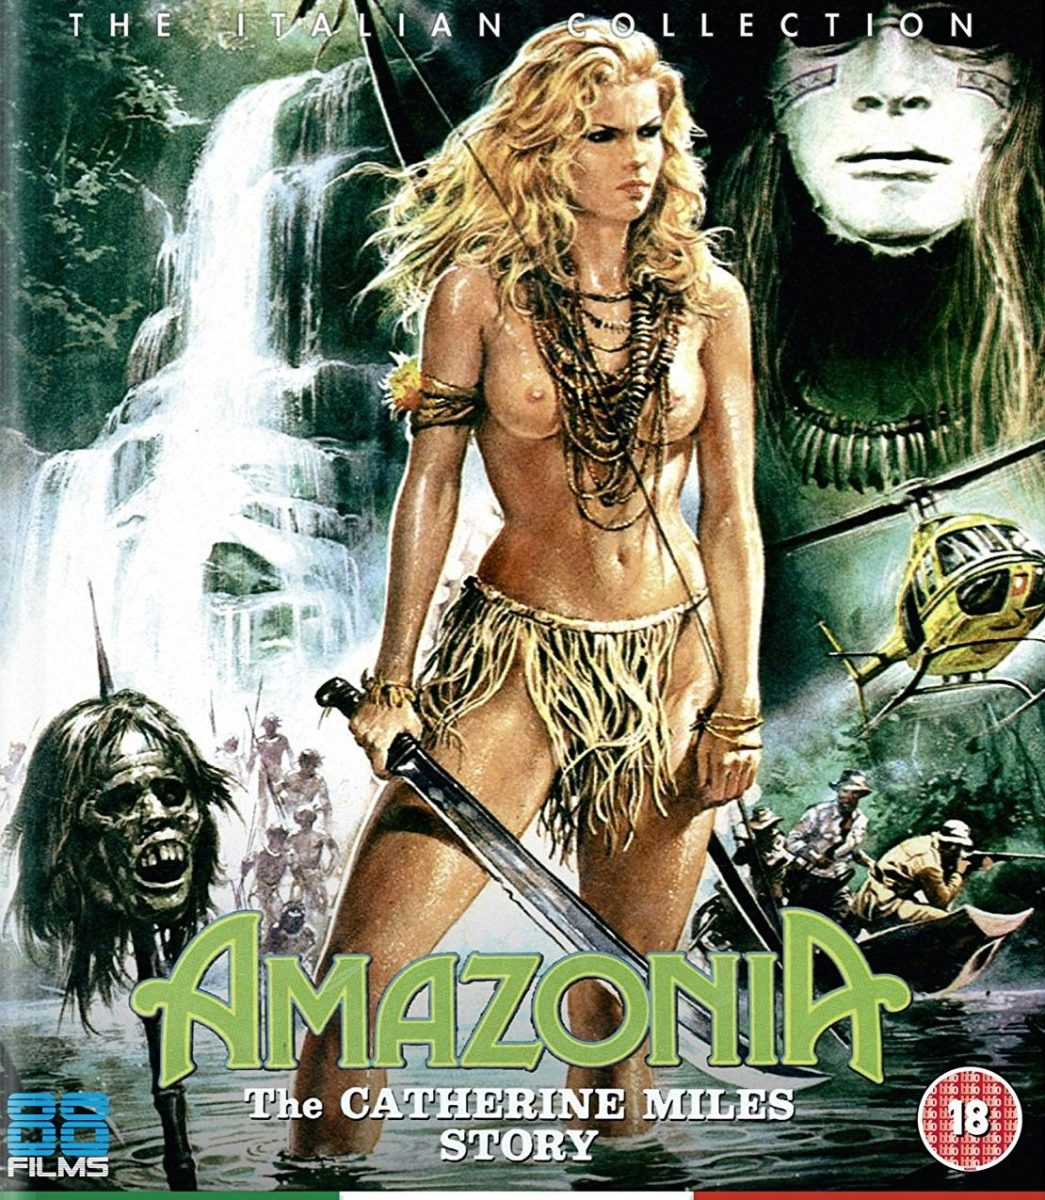 Preview: Amazonia - The Catherine Miles Story (Bluray)